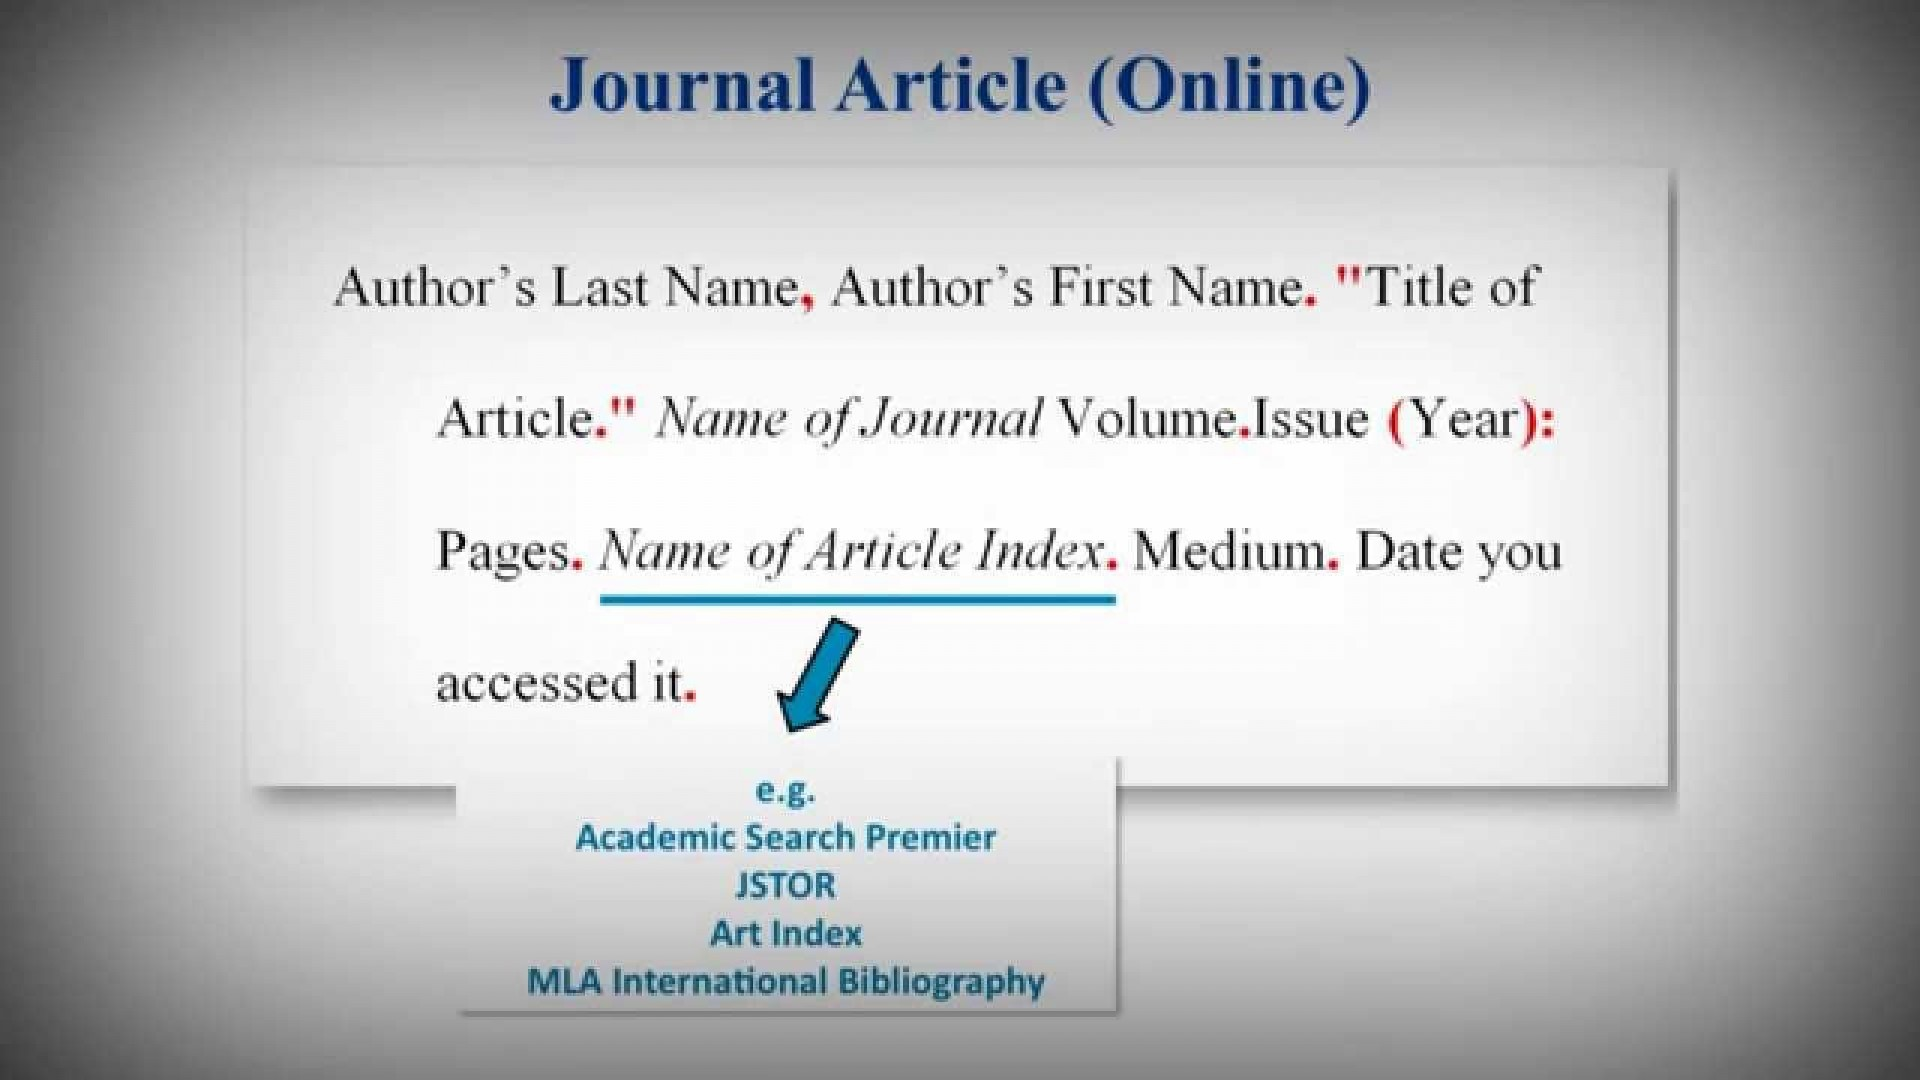 017 Maxresdefault How To Cite Articles In Essay Singular A Quote From An Internet Article Scholarly Text Mla Journal Paper Apa 1920